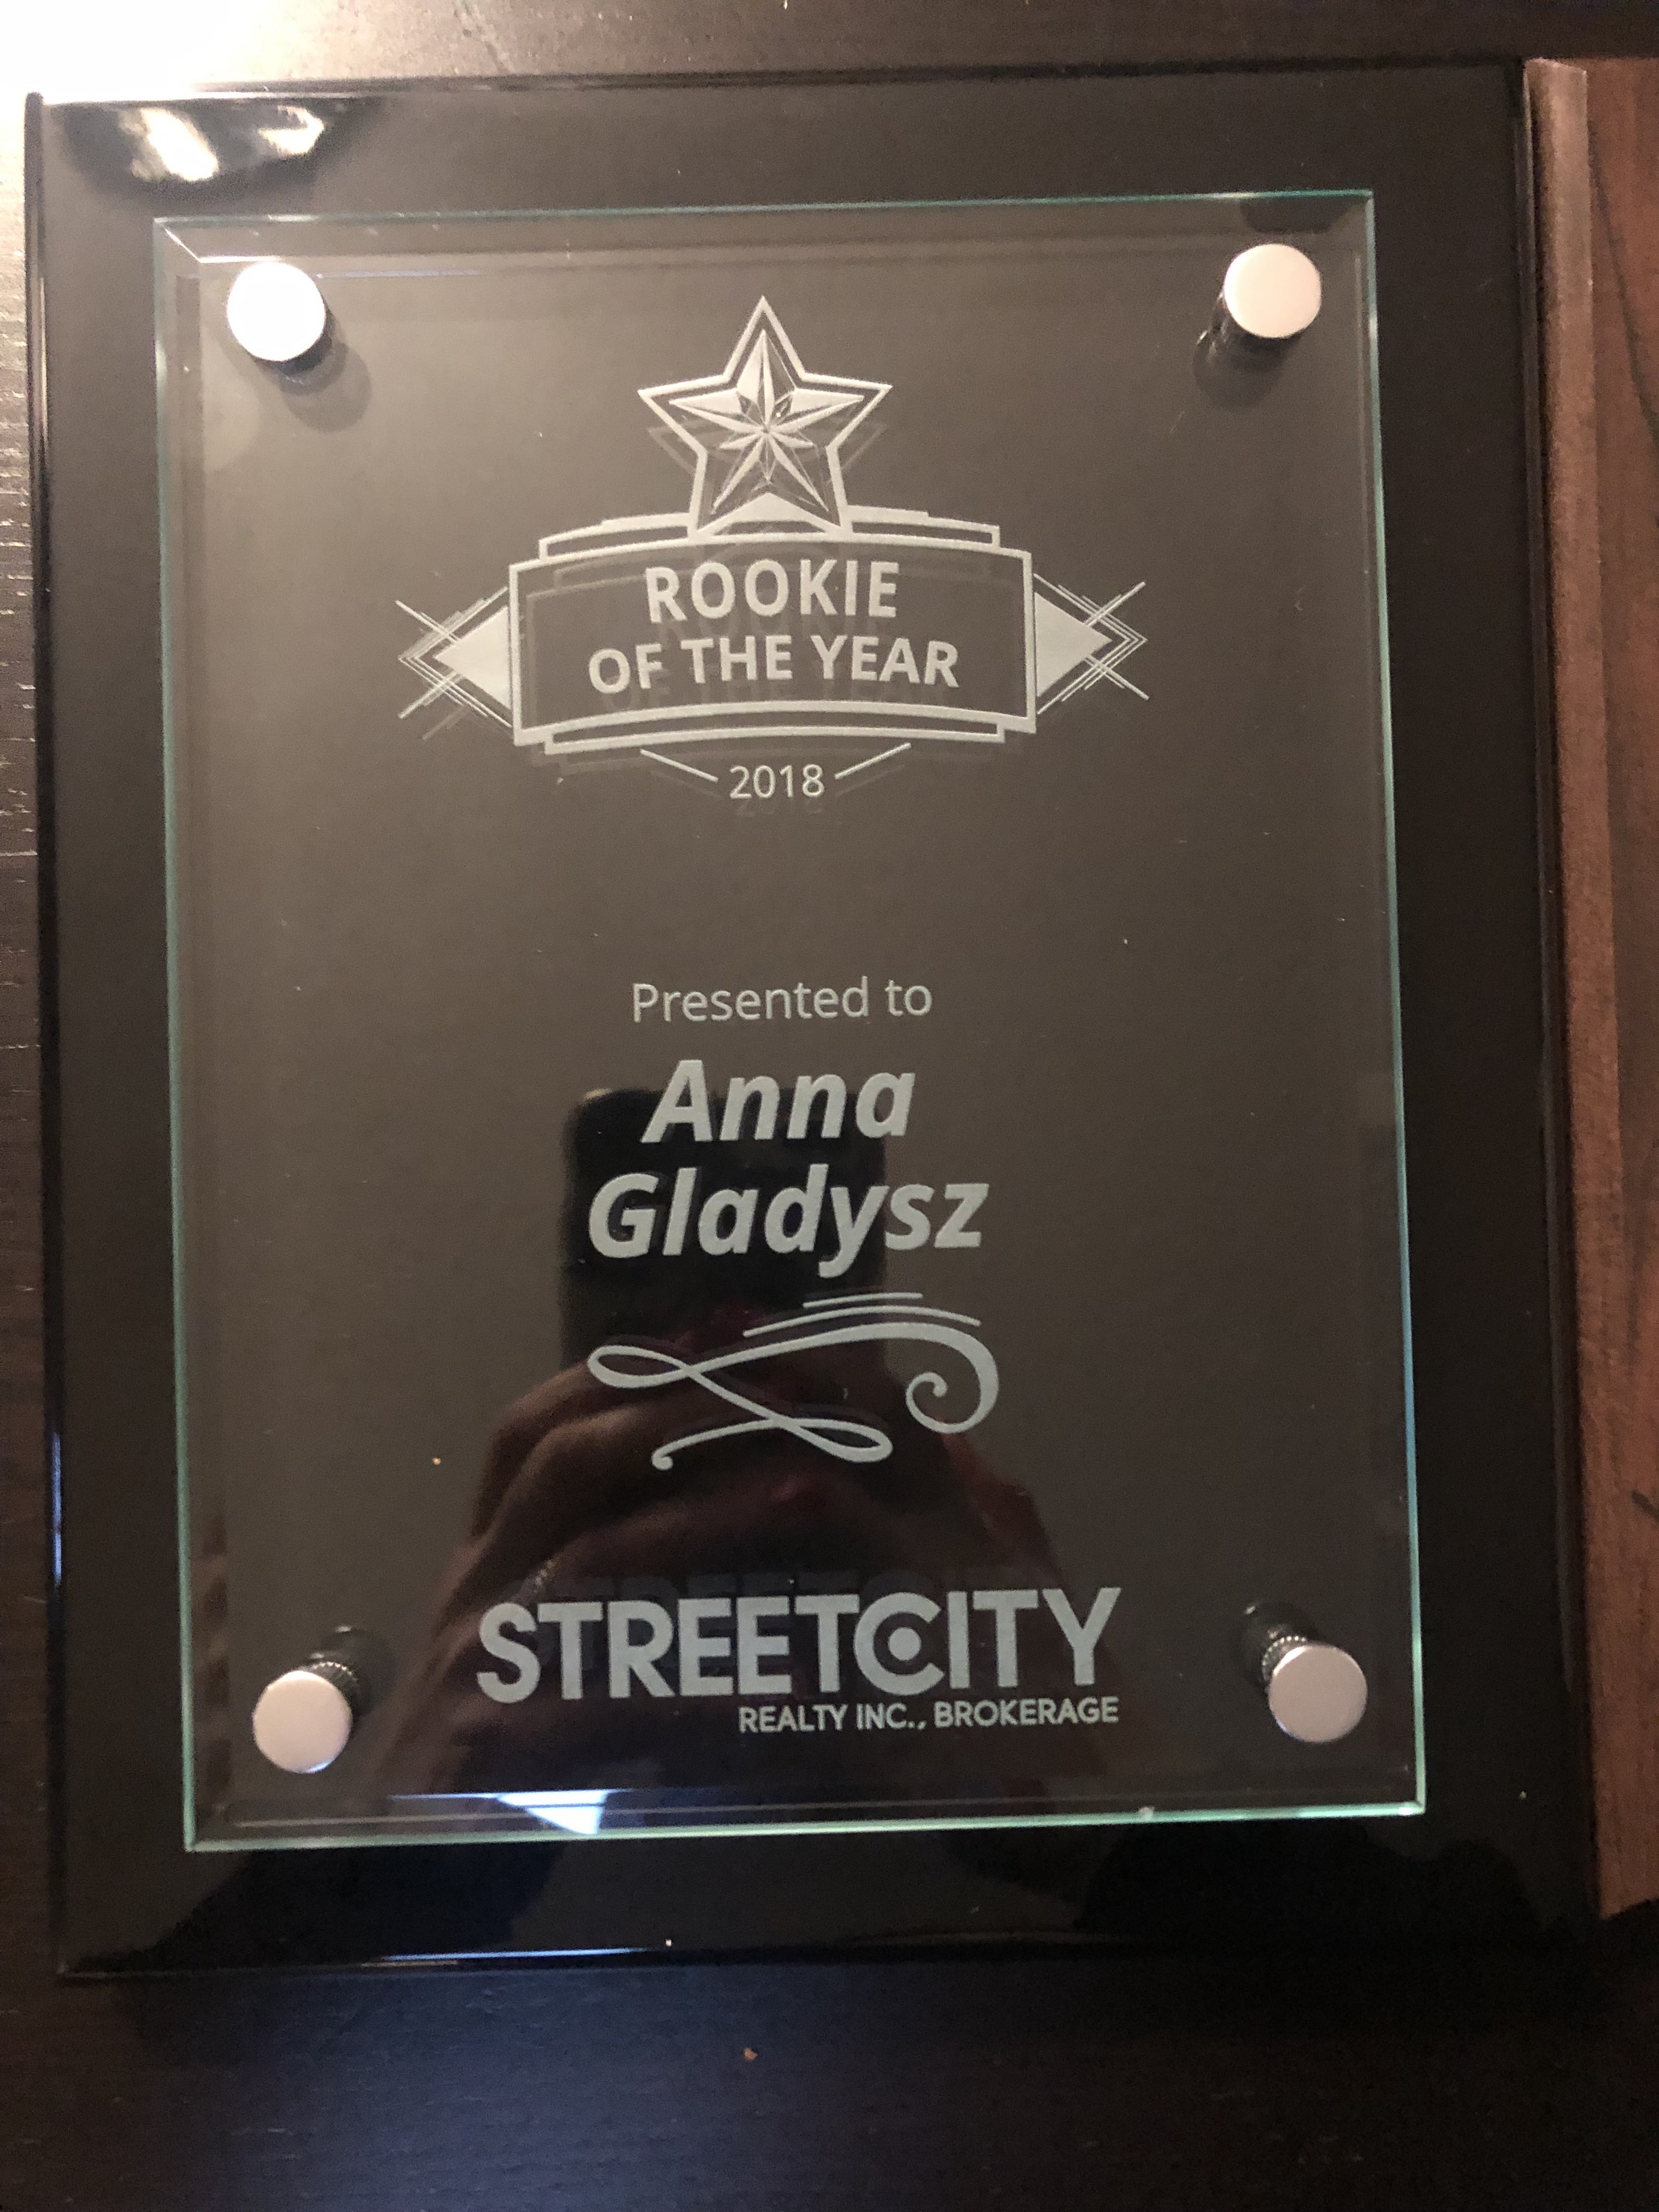 Rookie of the Year 2018 image